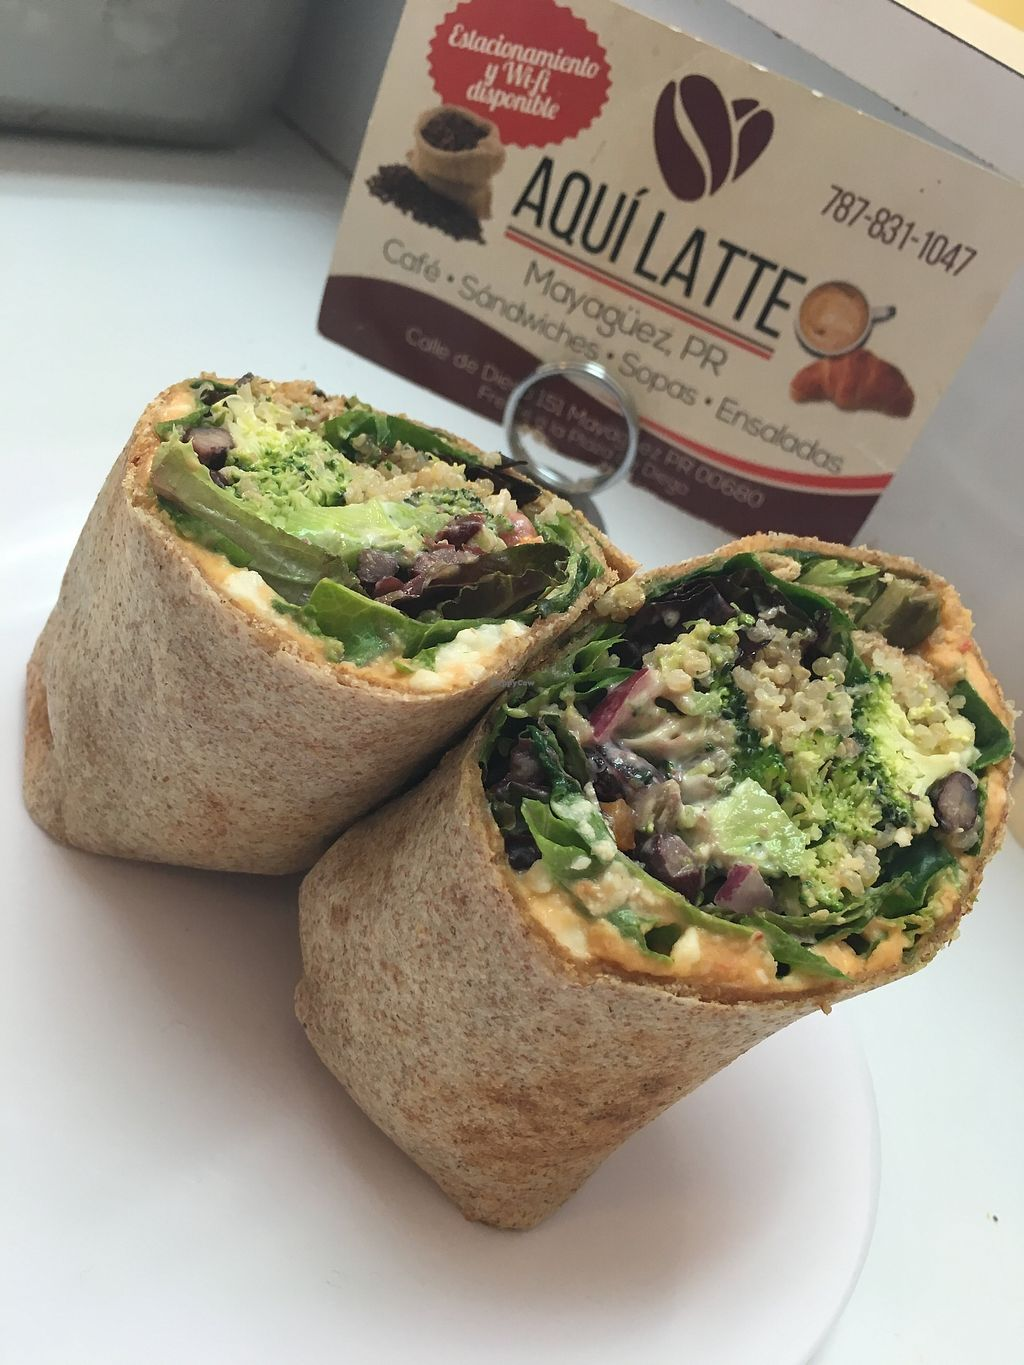 """Photo of Aqui Latte  by <a href=""""/members/profile/javierivan"""">javierivan</a> <br/>Mix veggie wrap: homMeade hummus, broccoli slaw, quinoa salad mix greens and beans ceviche <br/> January 9, 2018  - <a href='/contact/abuse/image/97816/344762'>Report</a>"""